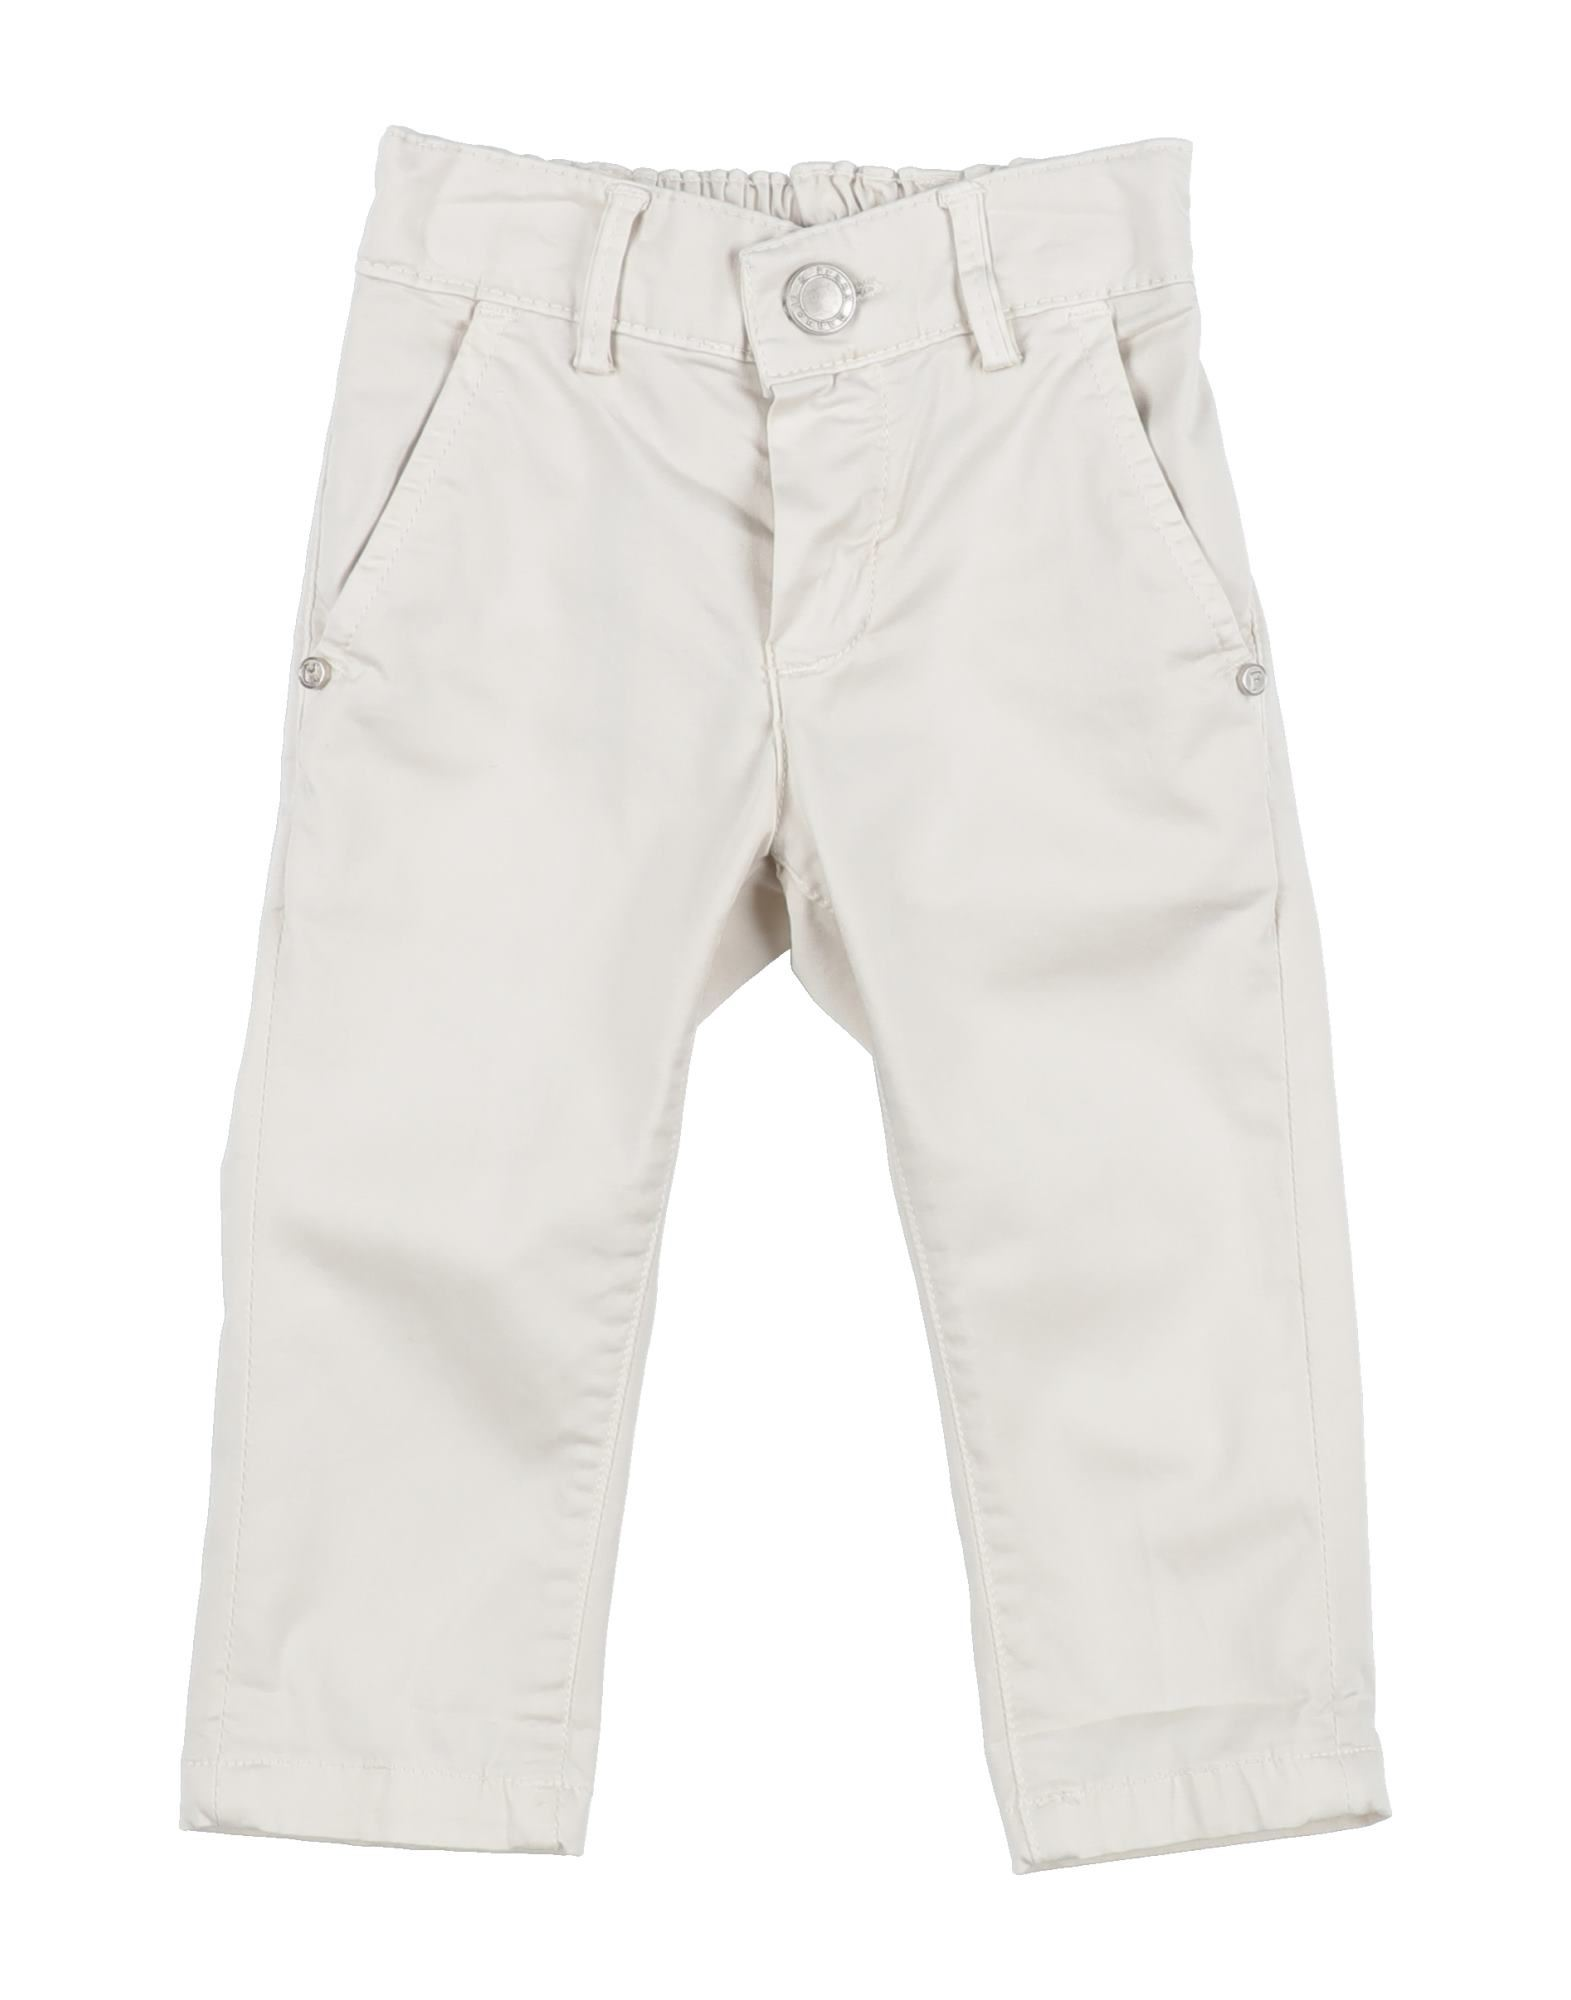 Manuell & Frank Kids' Casual Pants In White